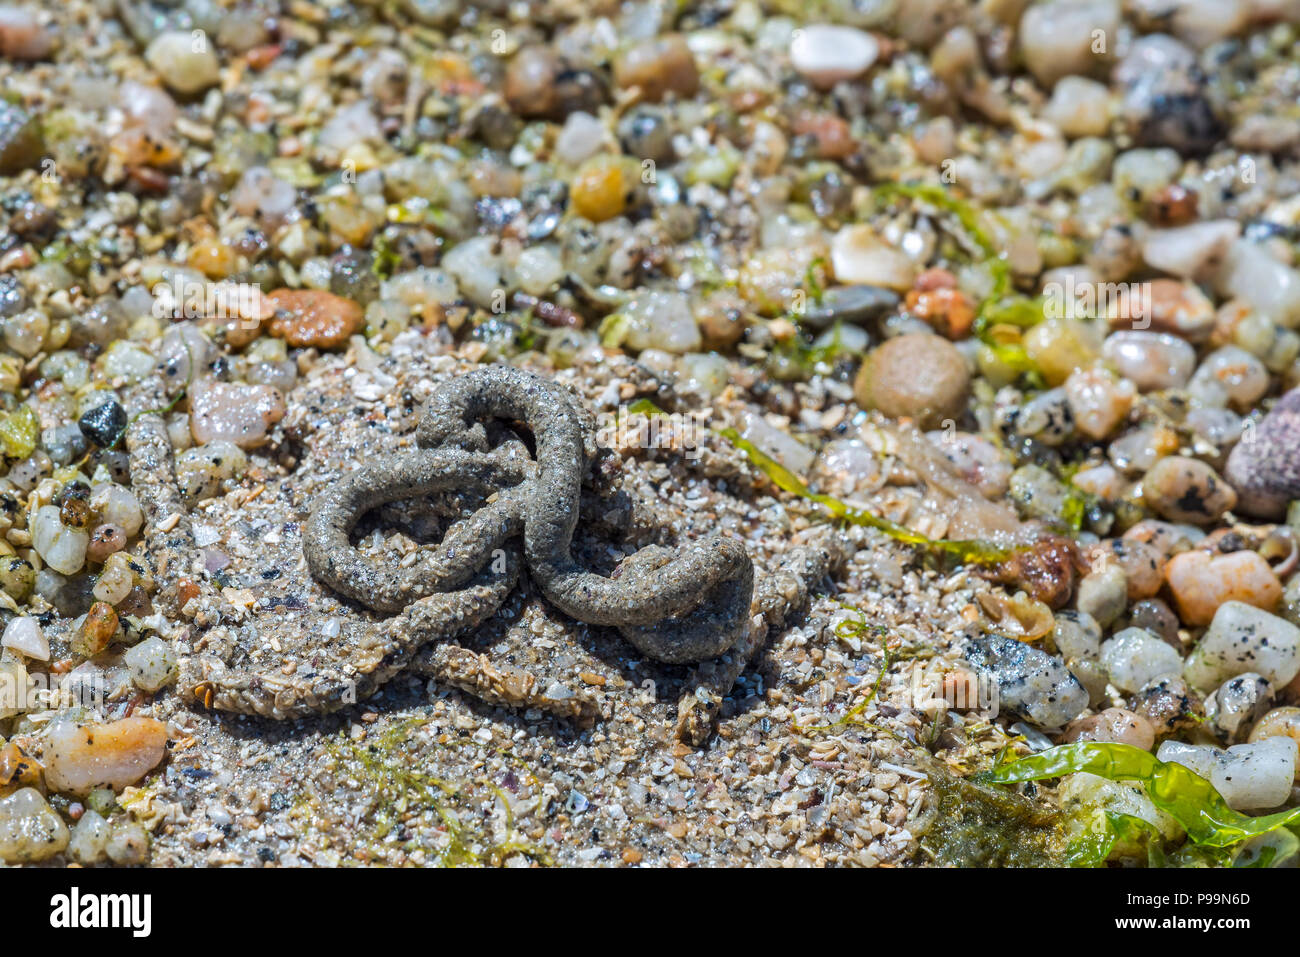 Lugworm / sandworm (Arenicola marina), large marine worm's casts of defecated sediment on beach at low tide along the North Sea coast - Stock Image